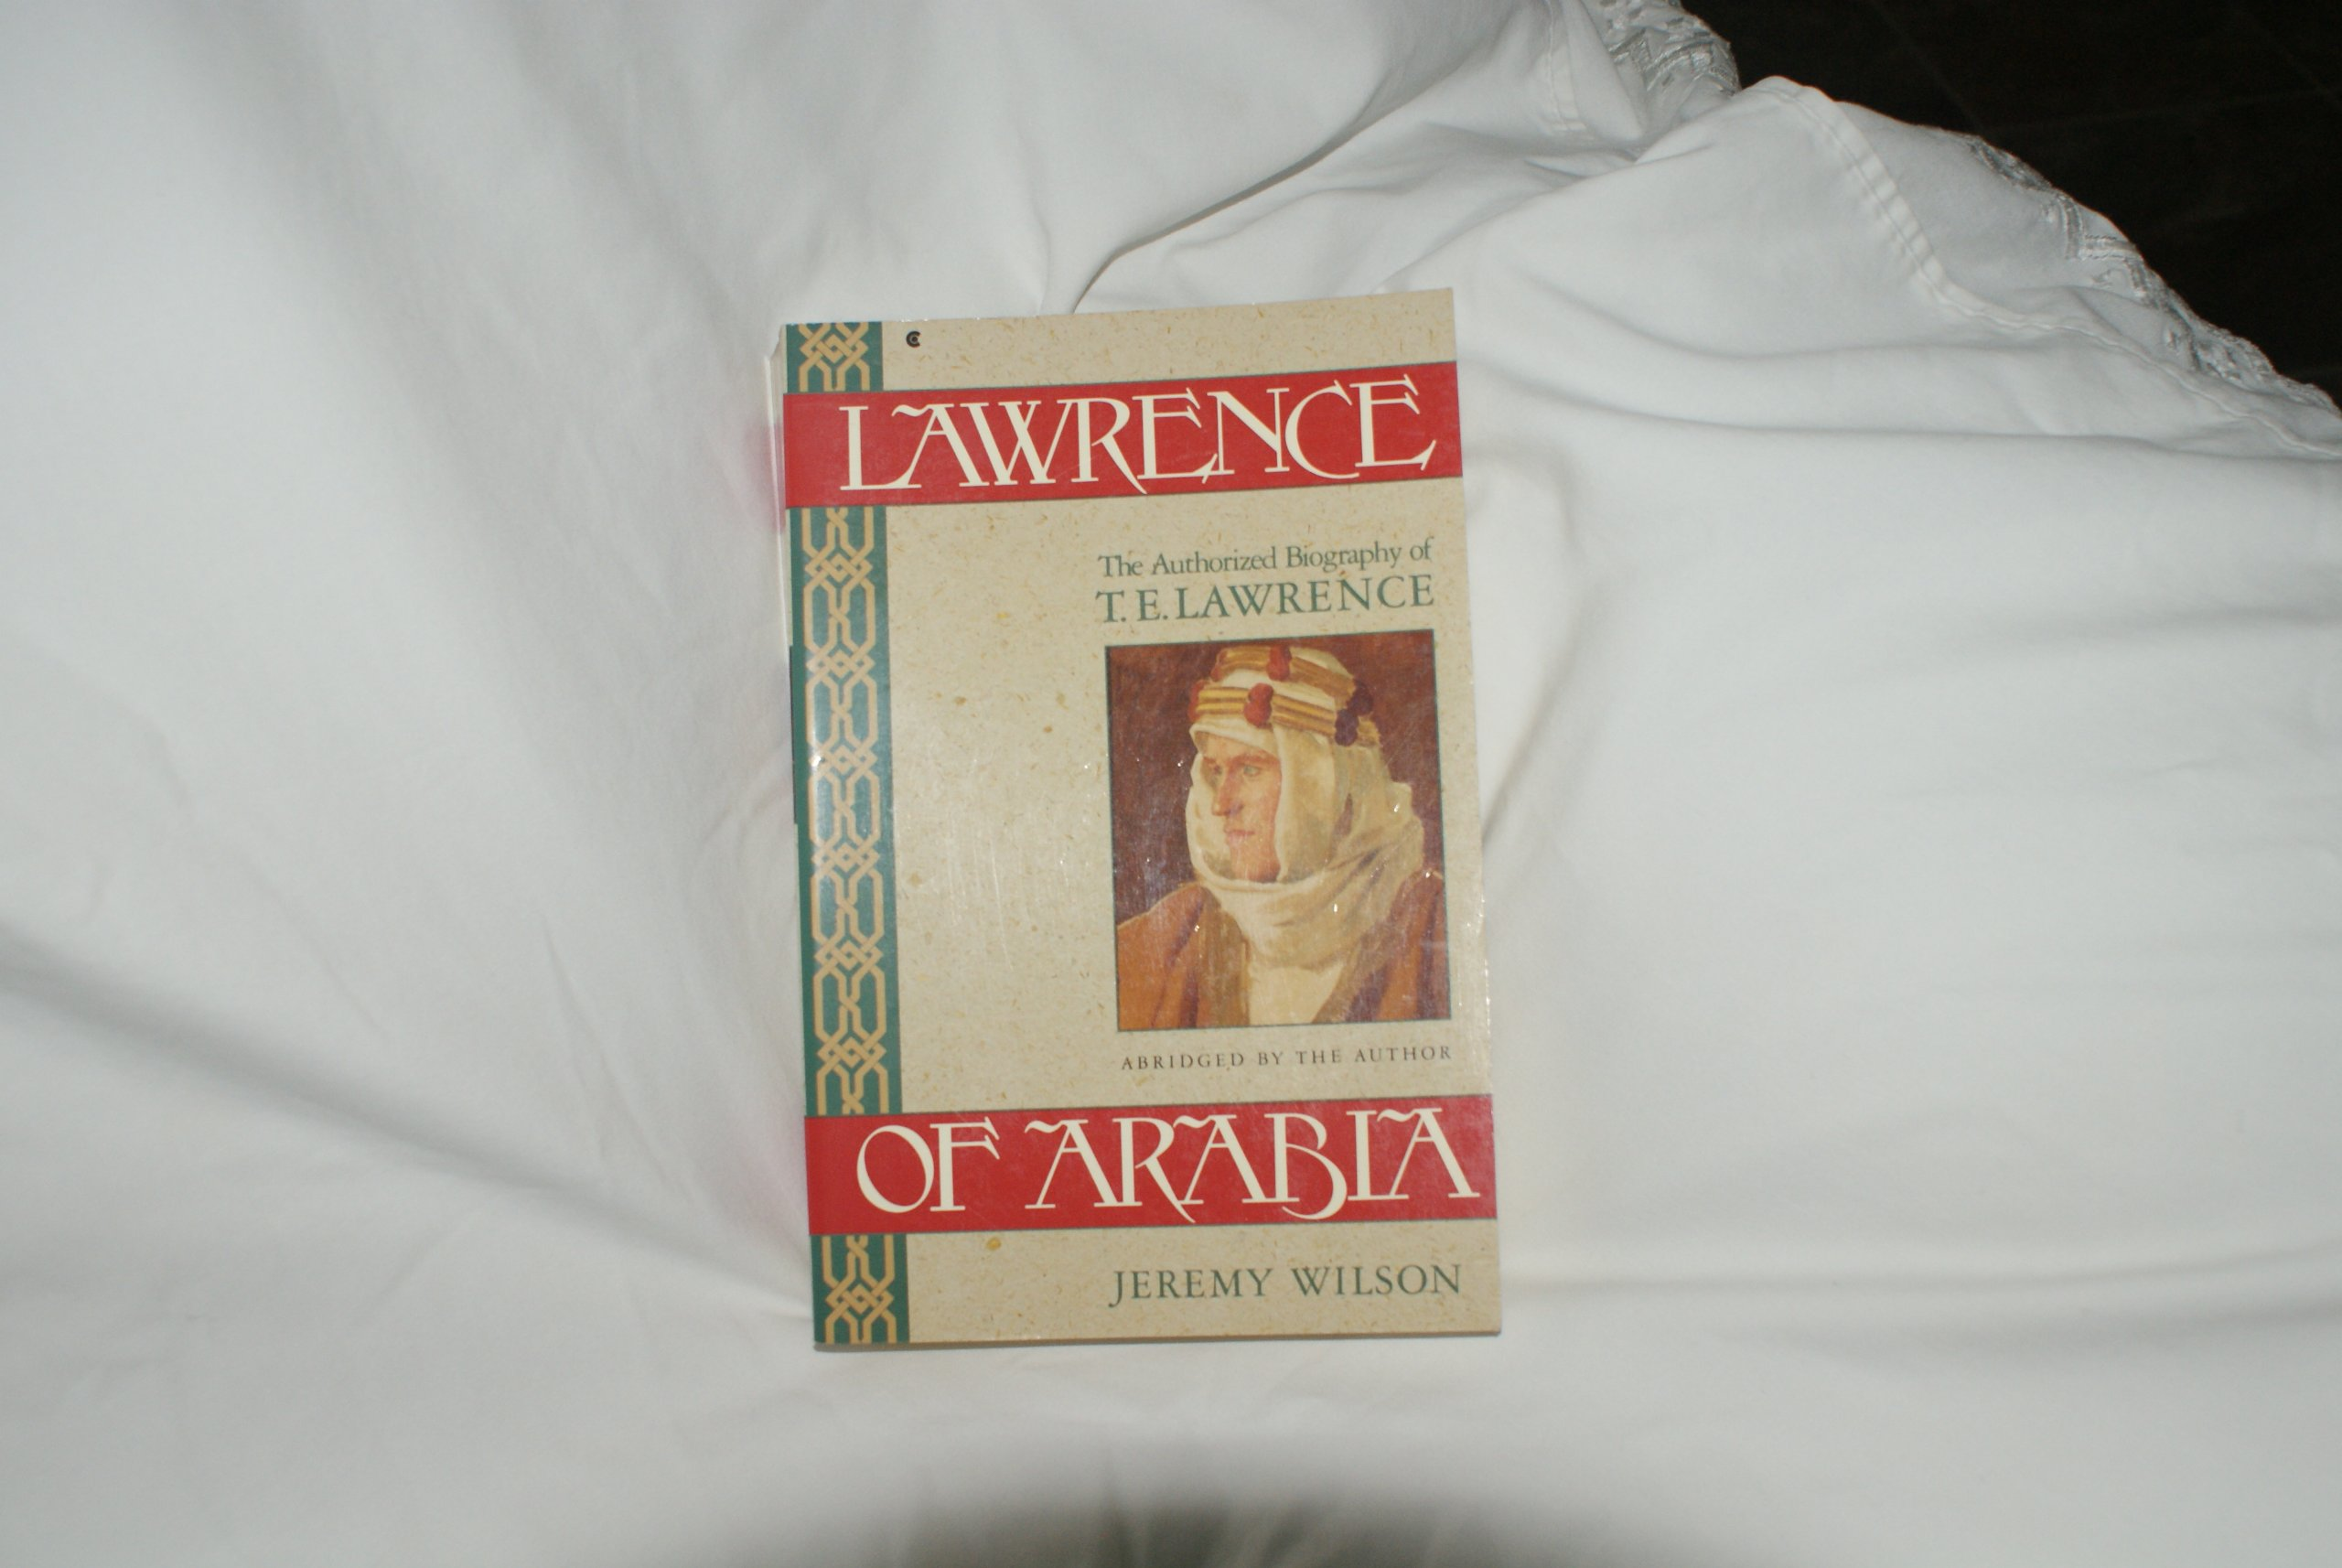 Lawrence of Arabia: The Authorized Biography of T.E. Lawrence:  Amazon.co.uk: Jeremy Wilson: 9780020826620: Books